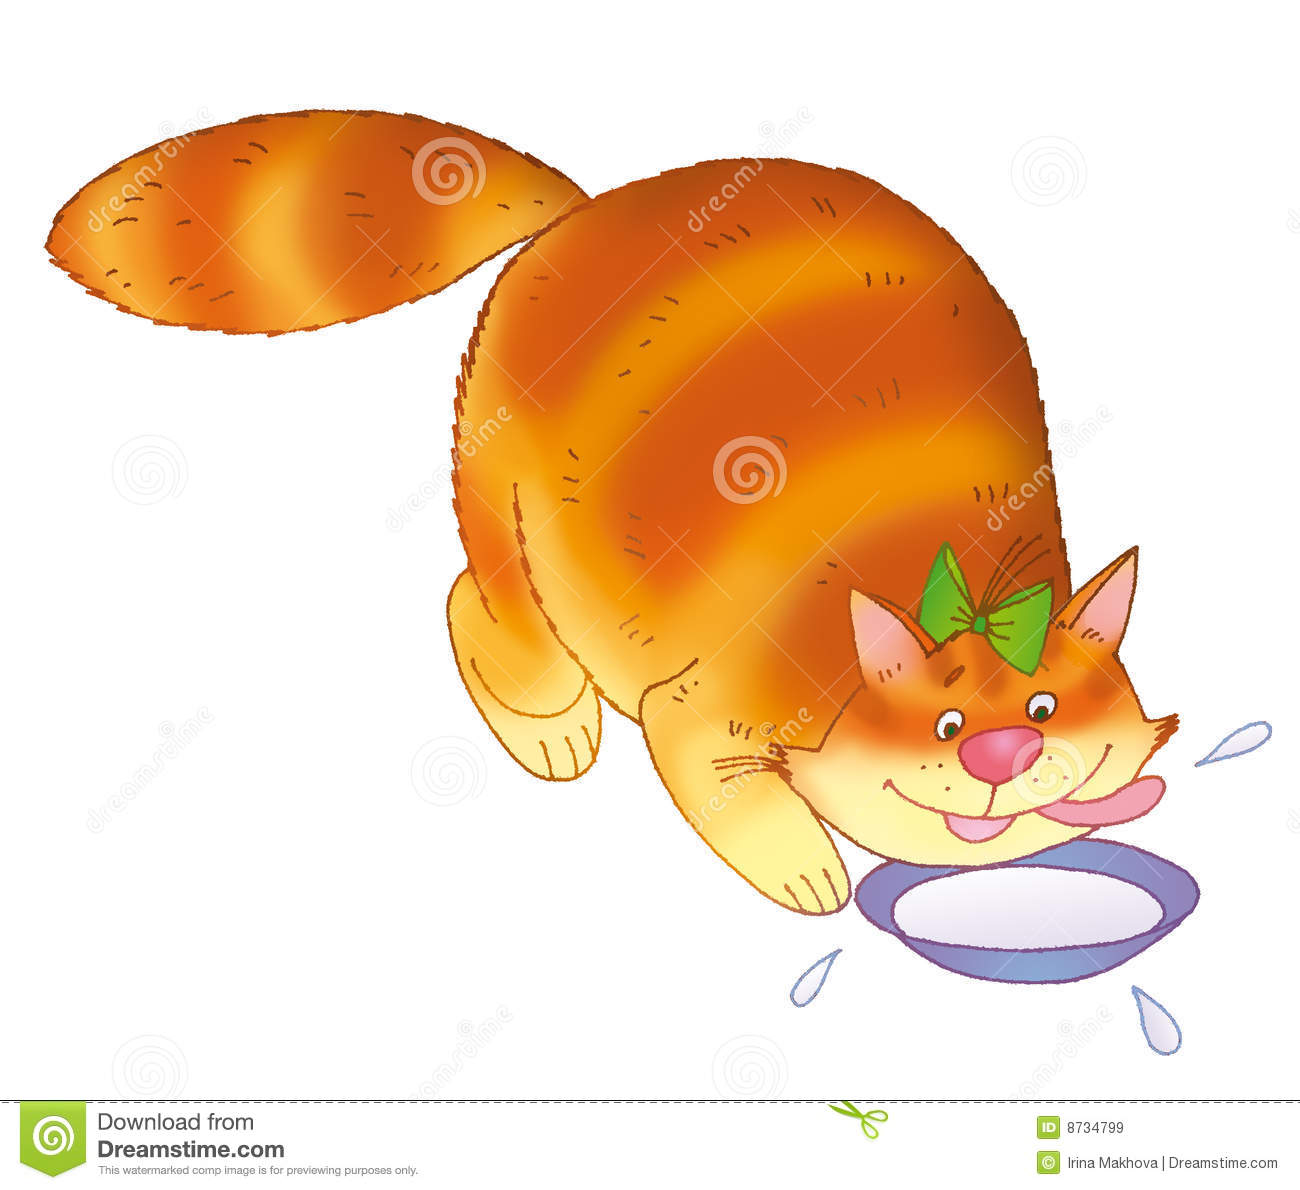 Cat And Bowl Of Milk Royalty Free Stock Images   Image  8734799